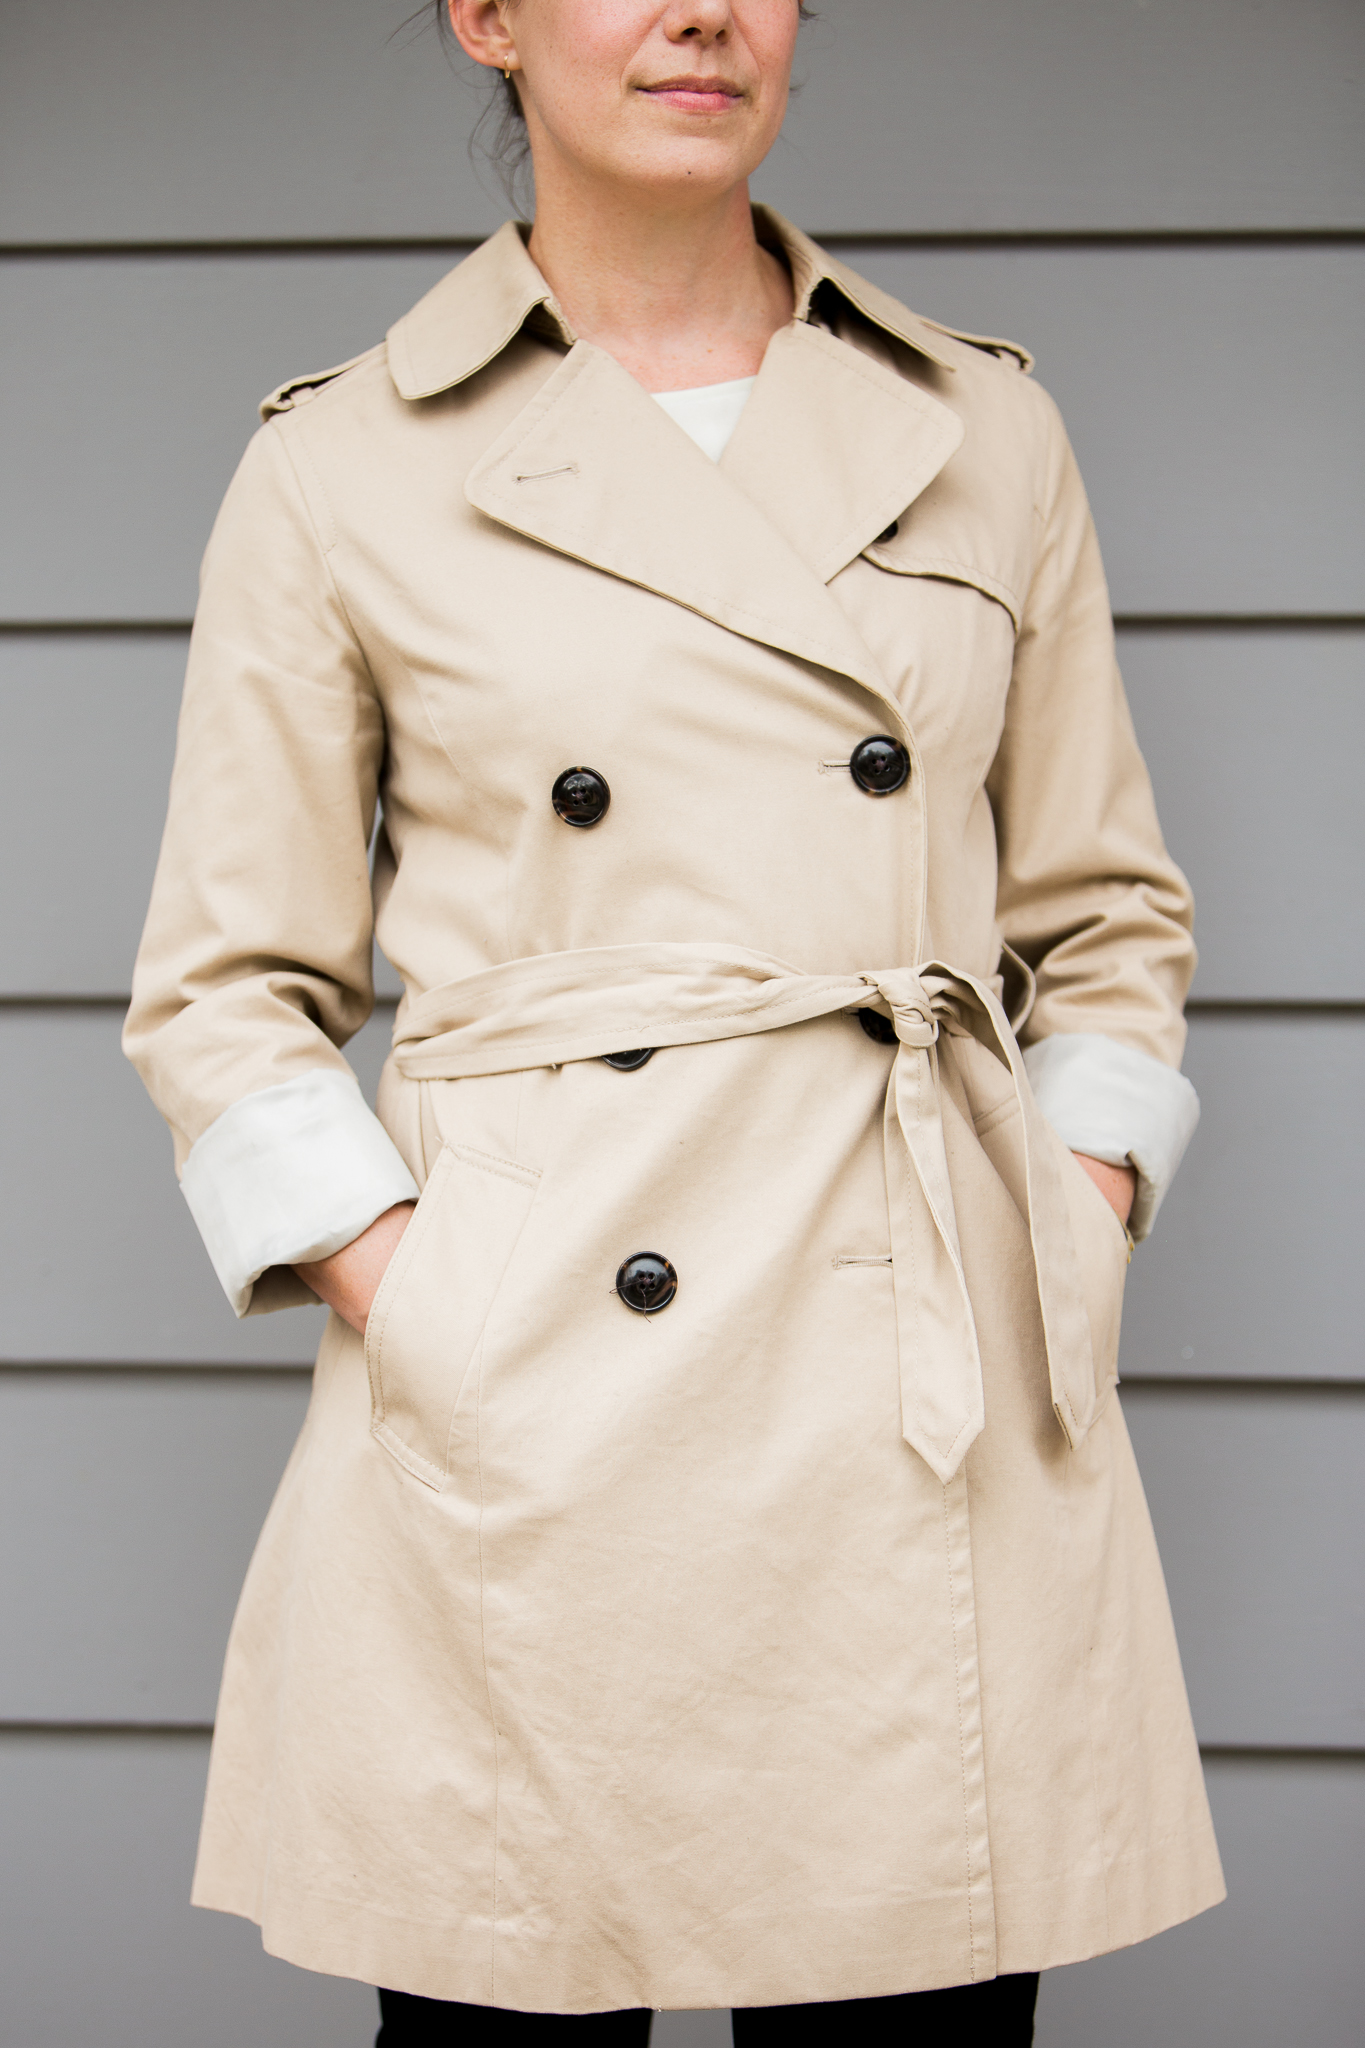 mindful closet st louis personal stylist: trench coat